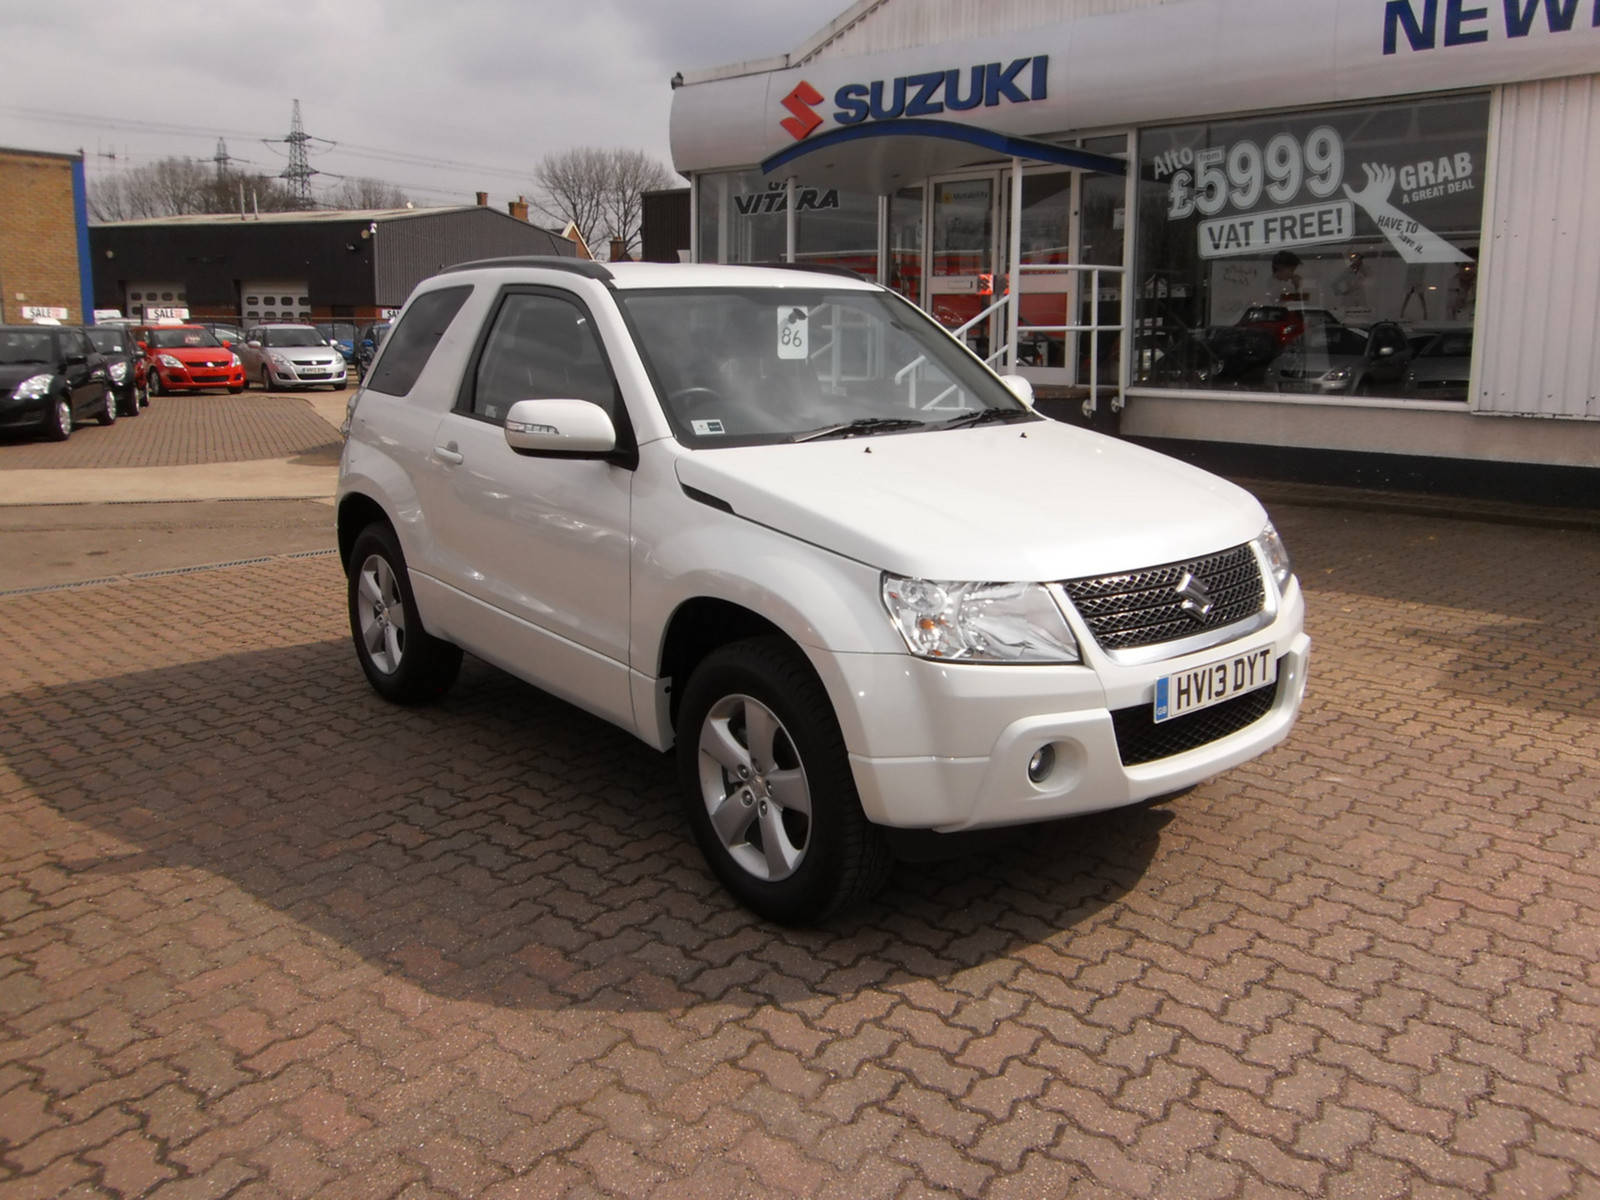 Suzuki Grand Vitara SZ4